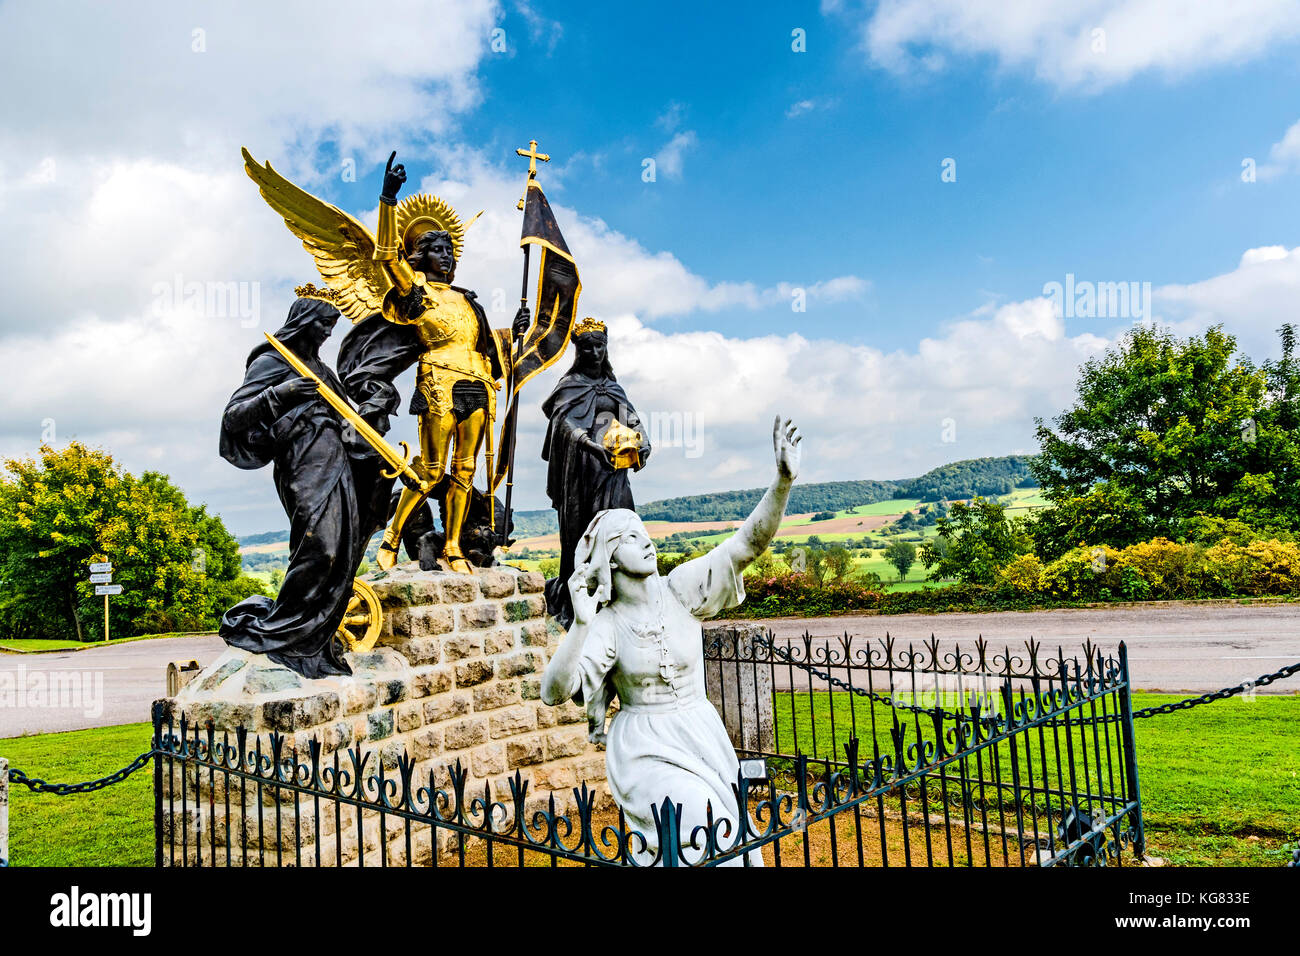 la pucelle joan of arc Joan of arc when joan of arc was born the hundred years war was over half way over she was considered a french saint, a national heroine, and was called the maid of orleans she was born to peasant parents in domremy-la-pucelle in france in 1412.